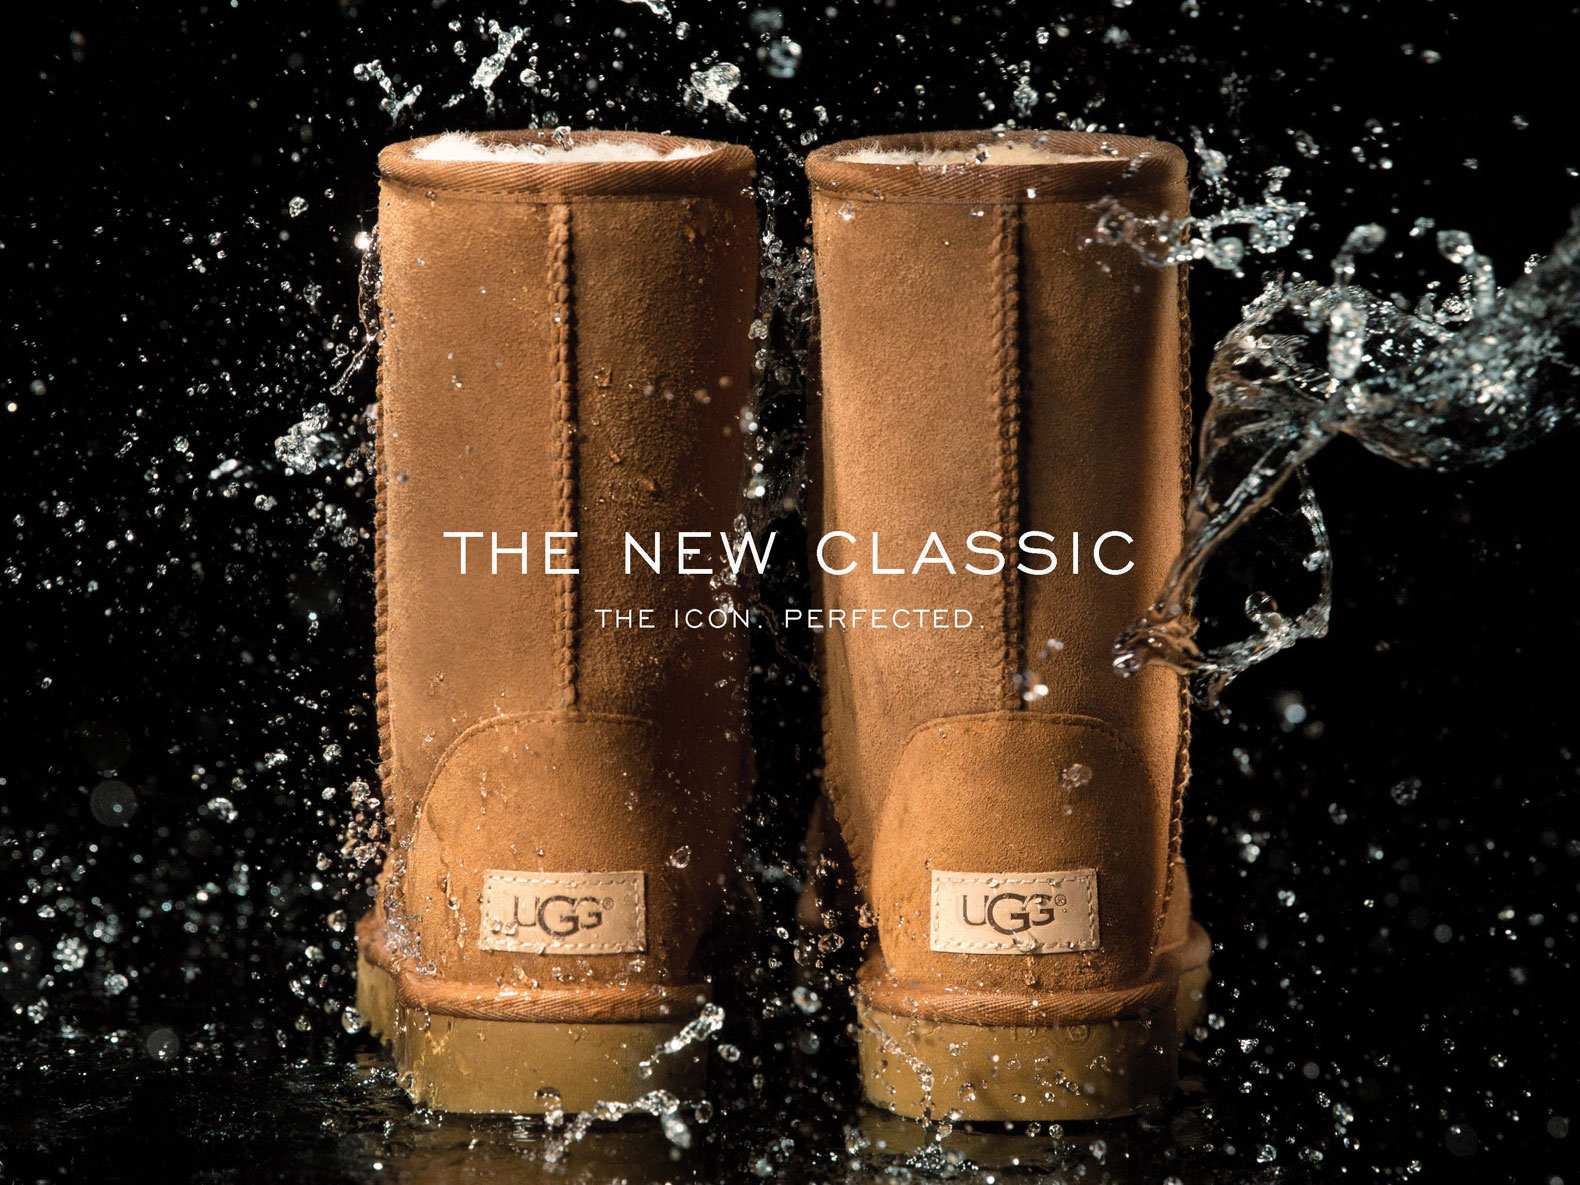 uggs and their ugly ugg boots truth